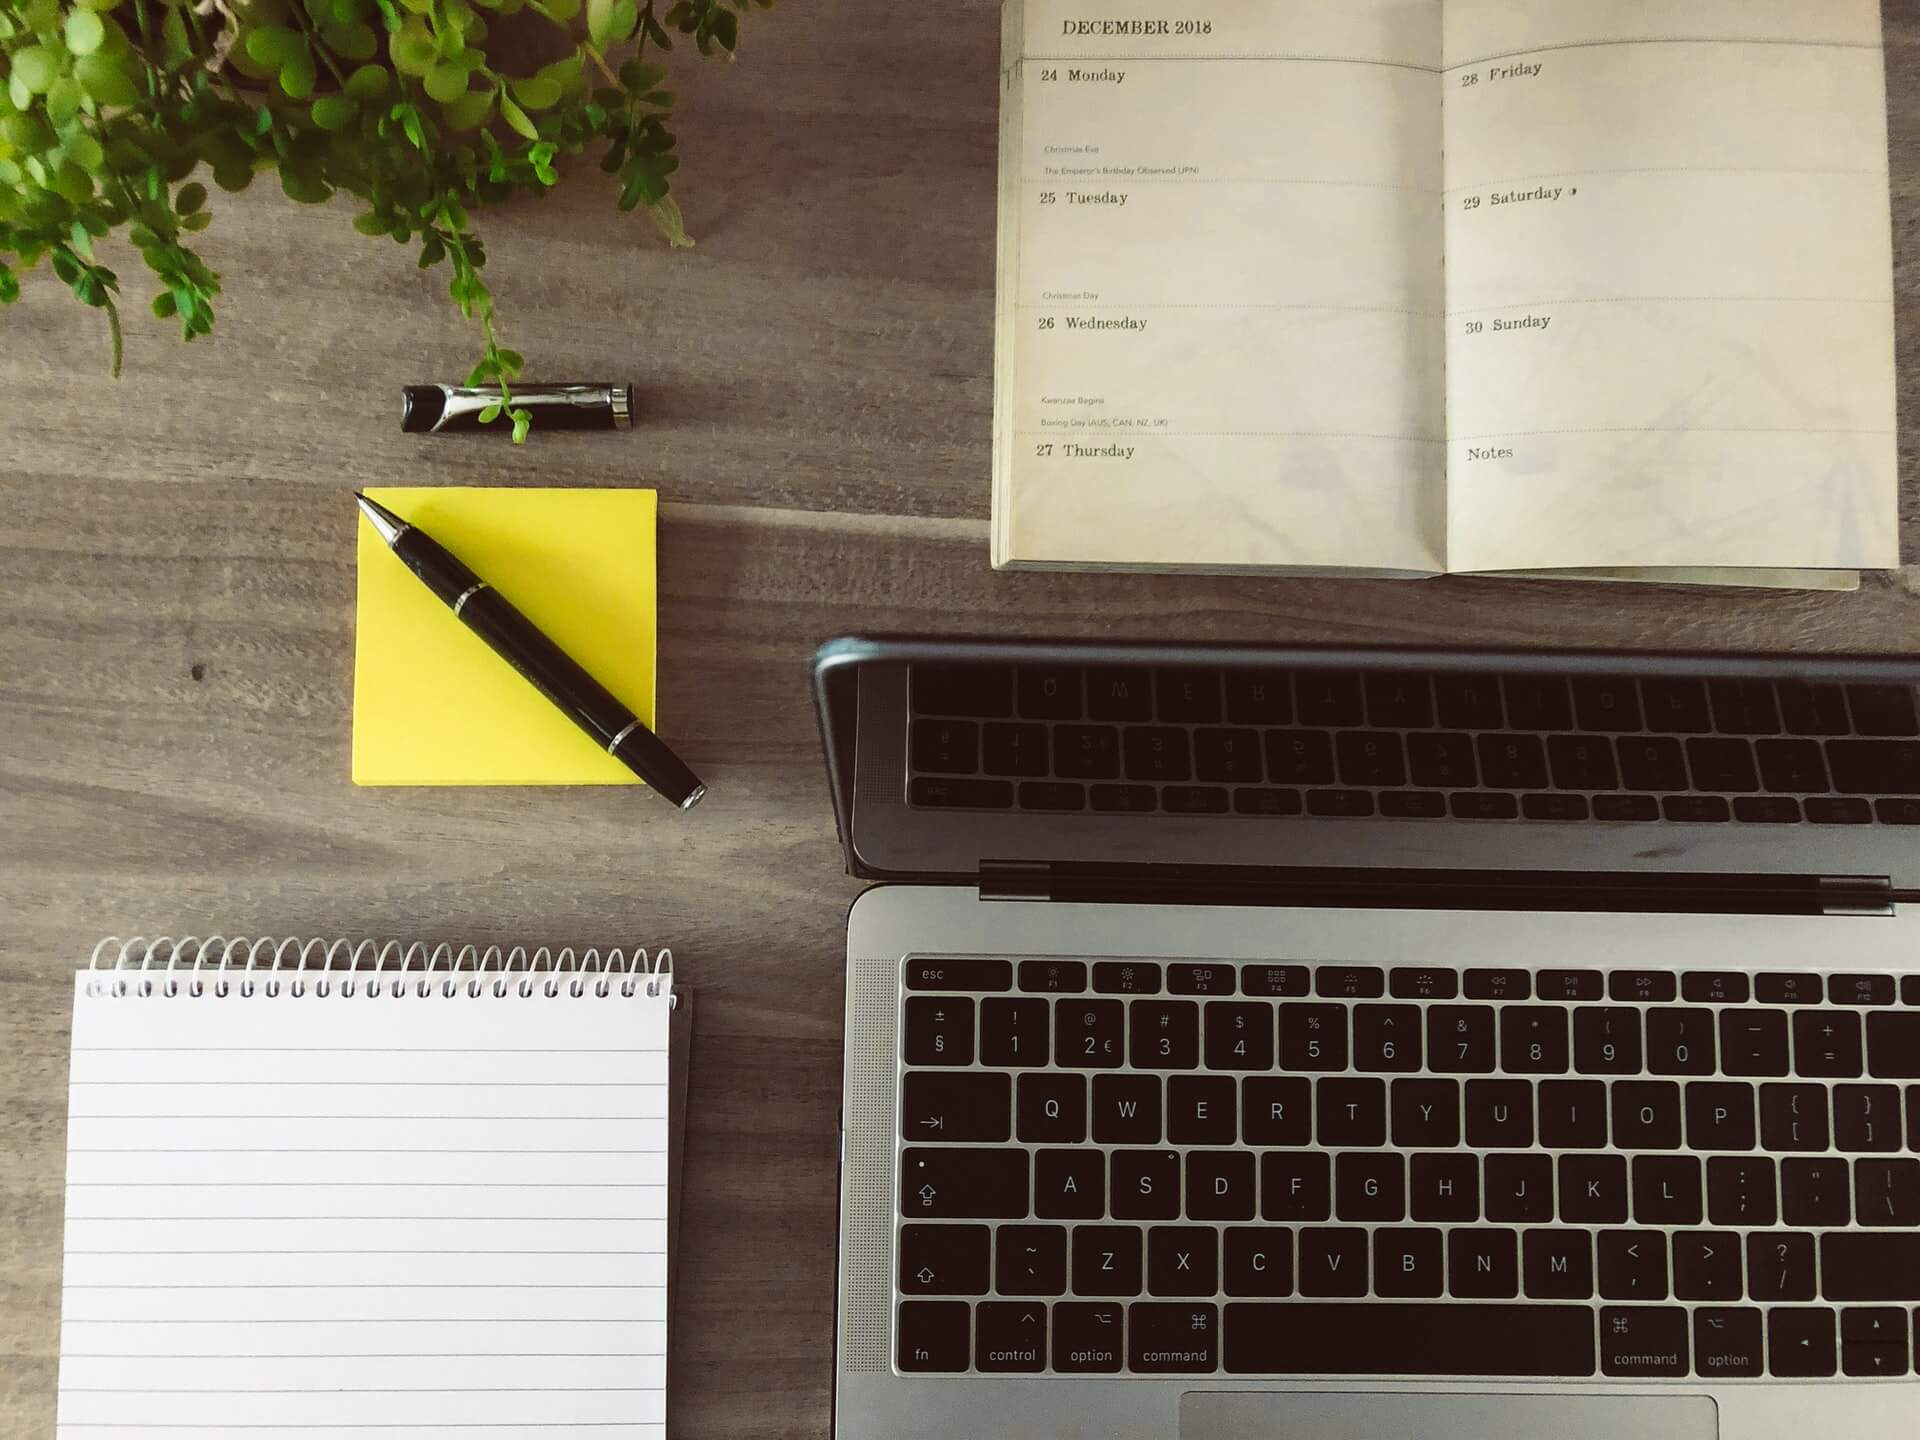 productive work from home meetings - agenda for meetings